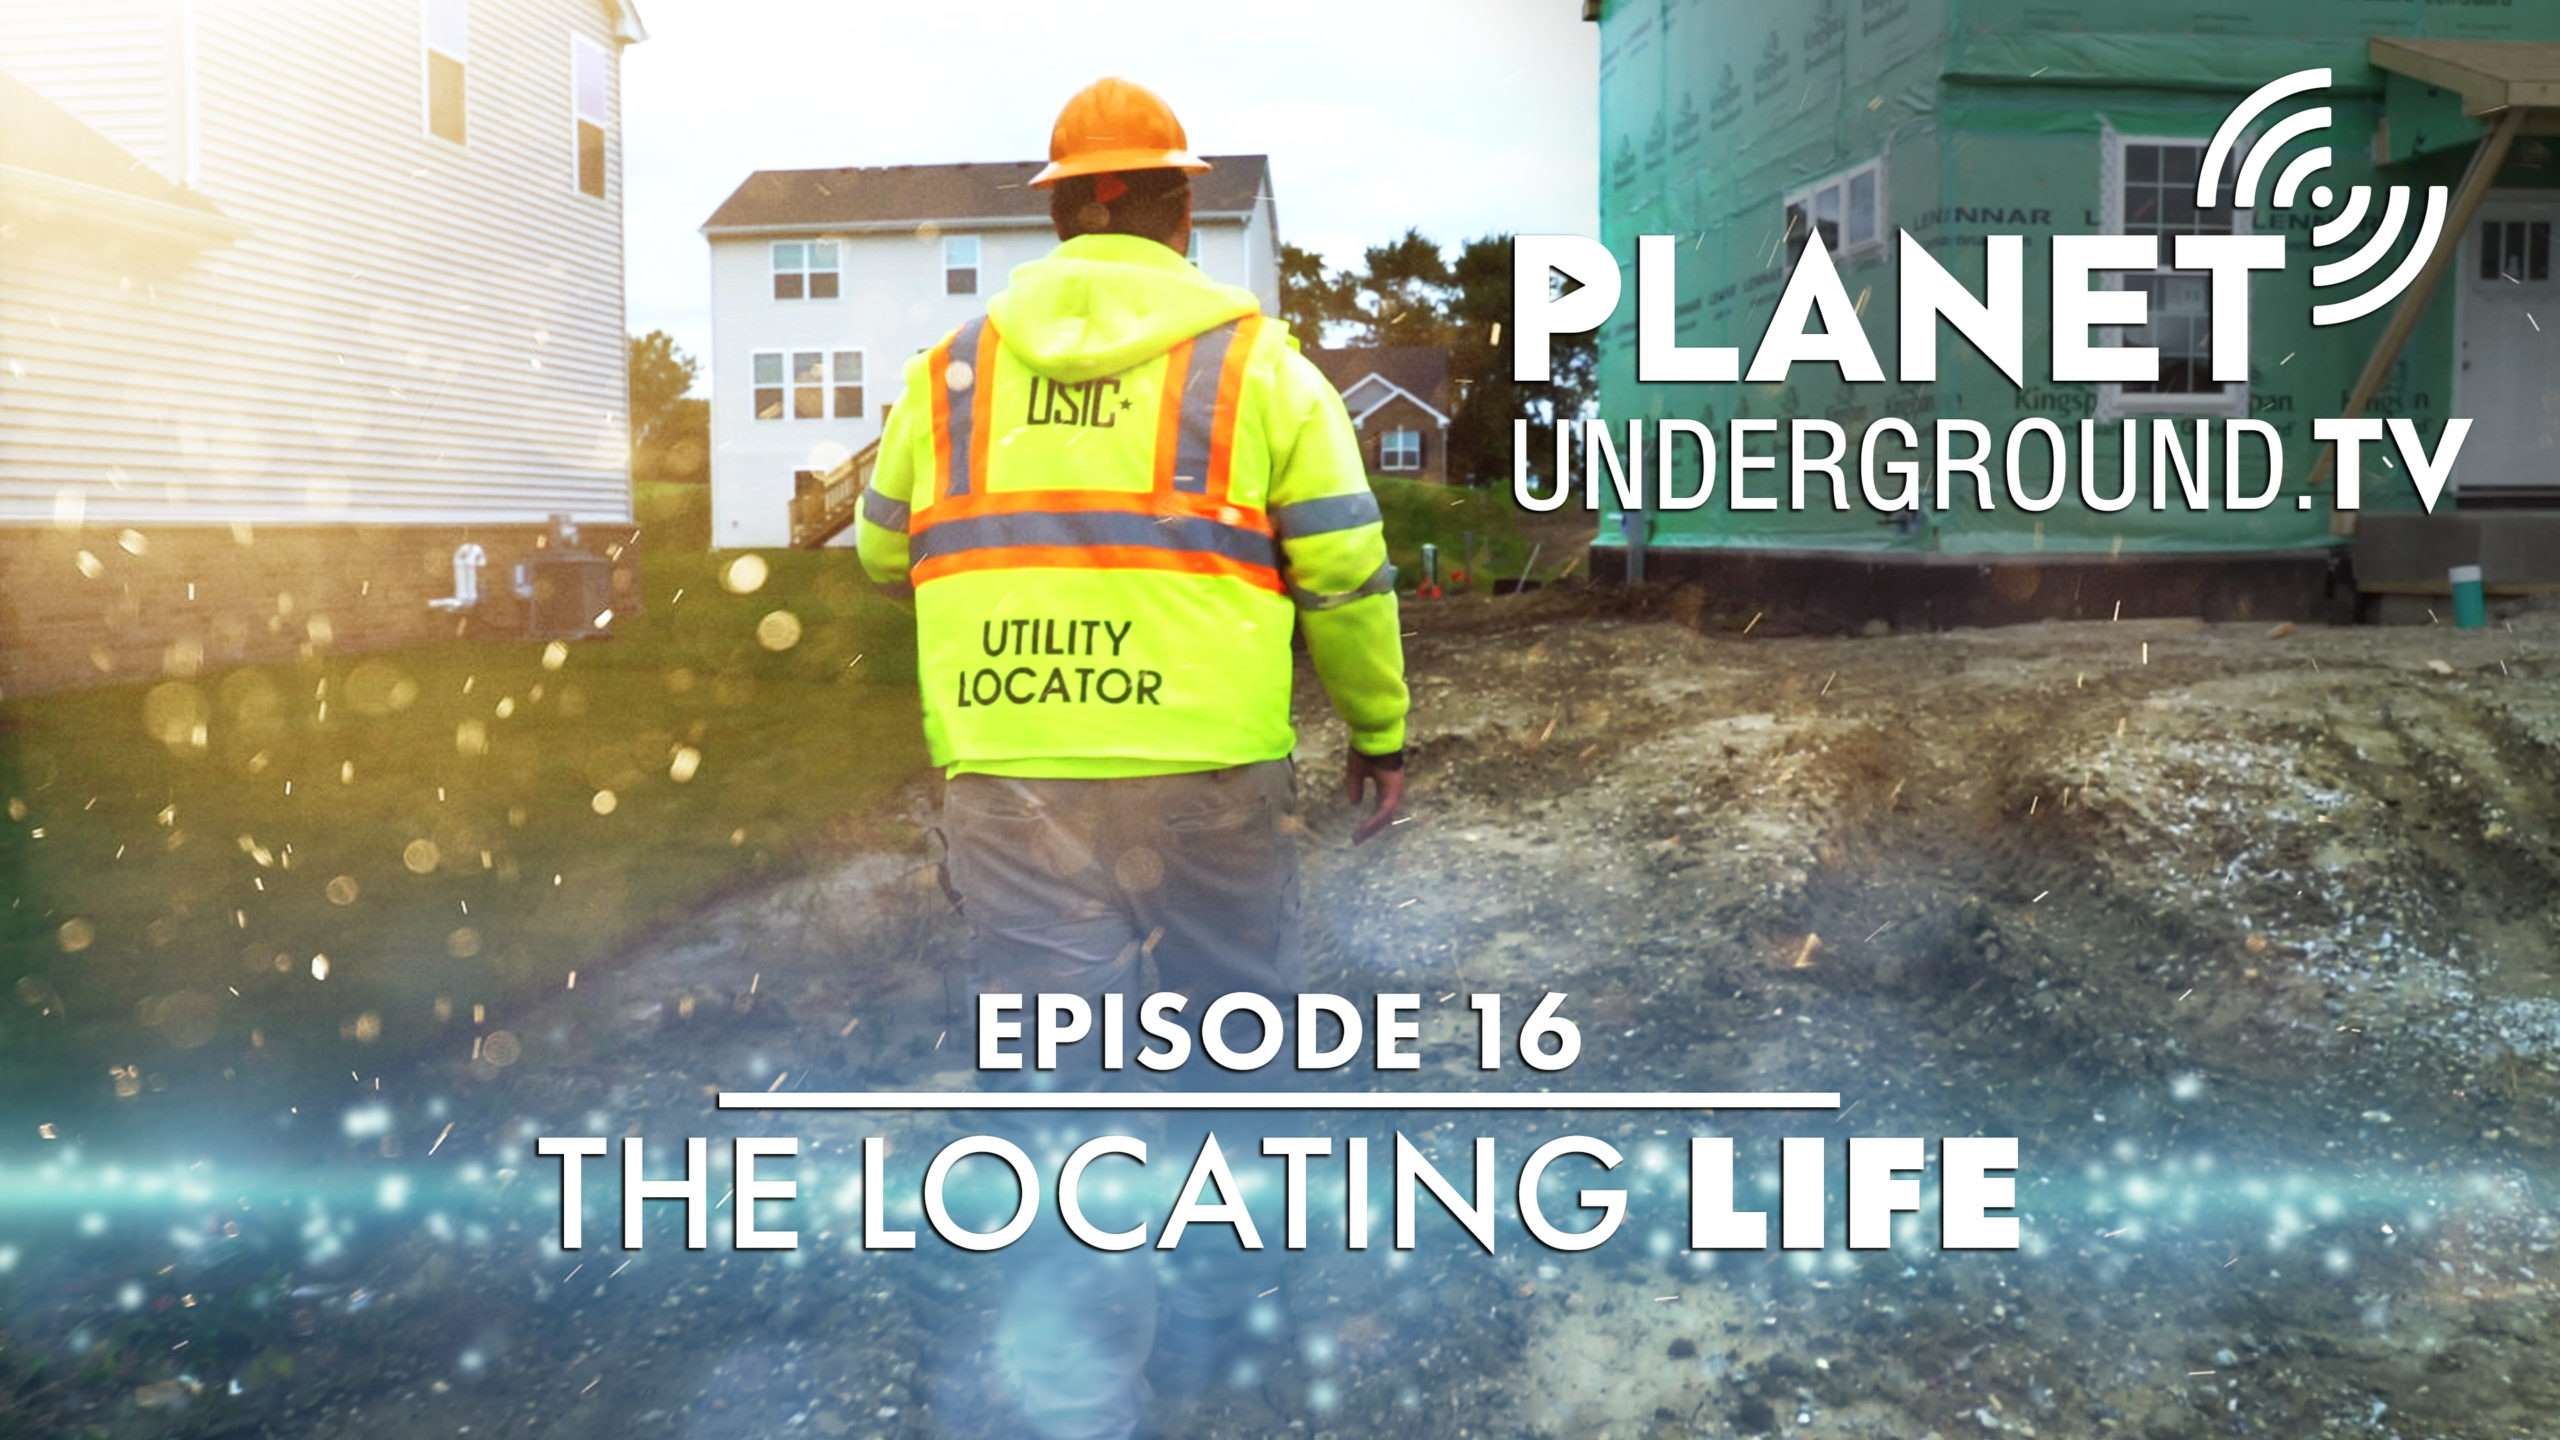 Episode 16: The Locating Life